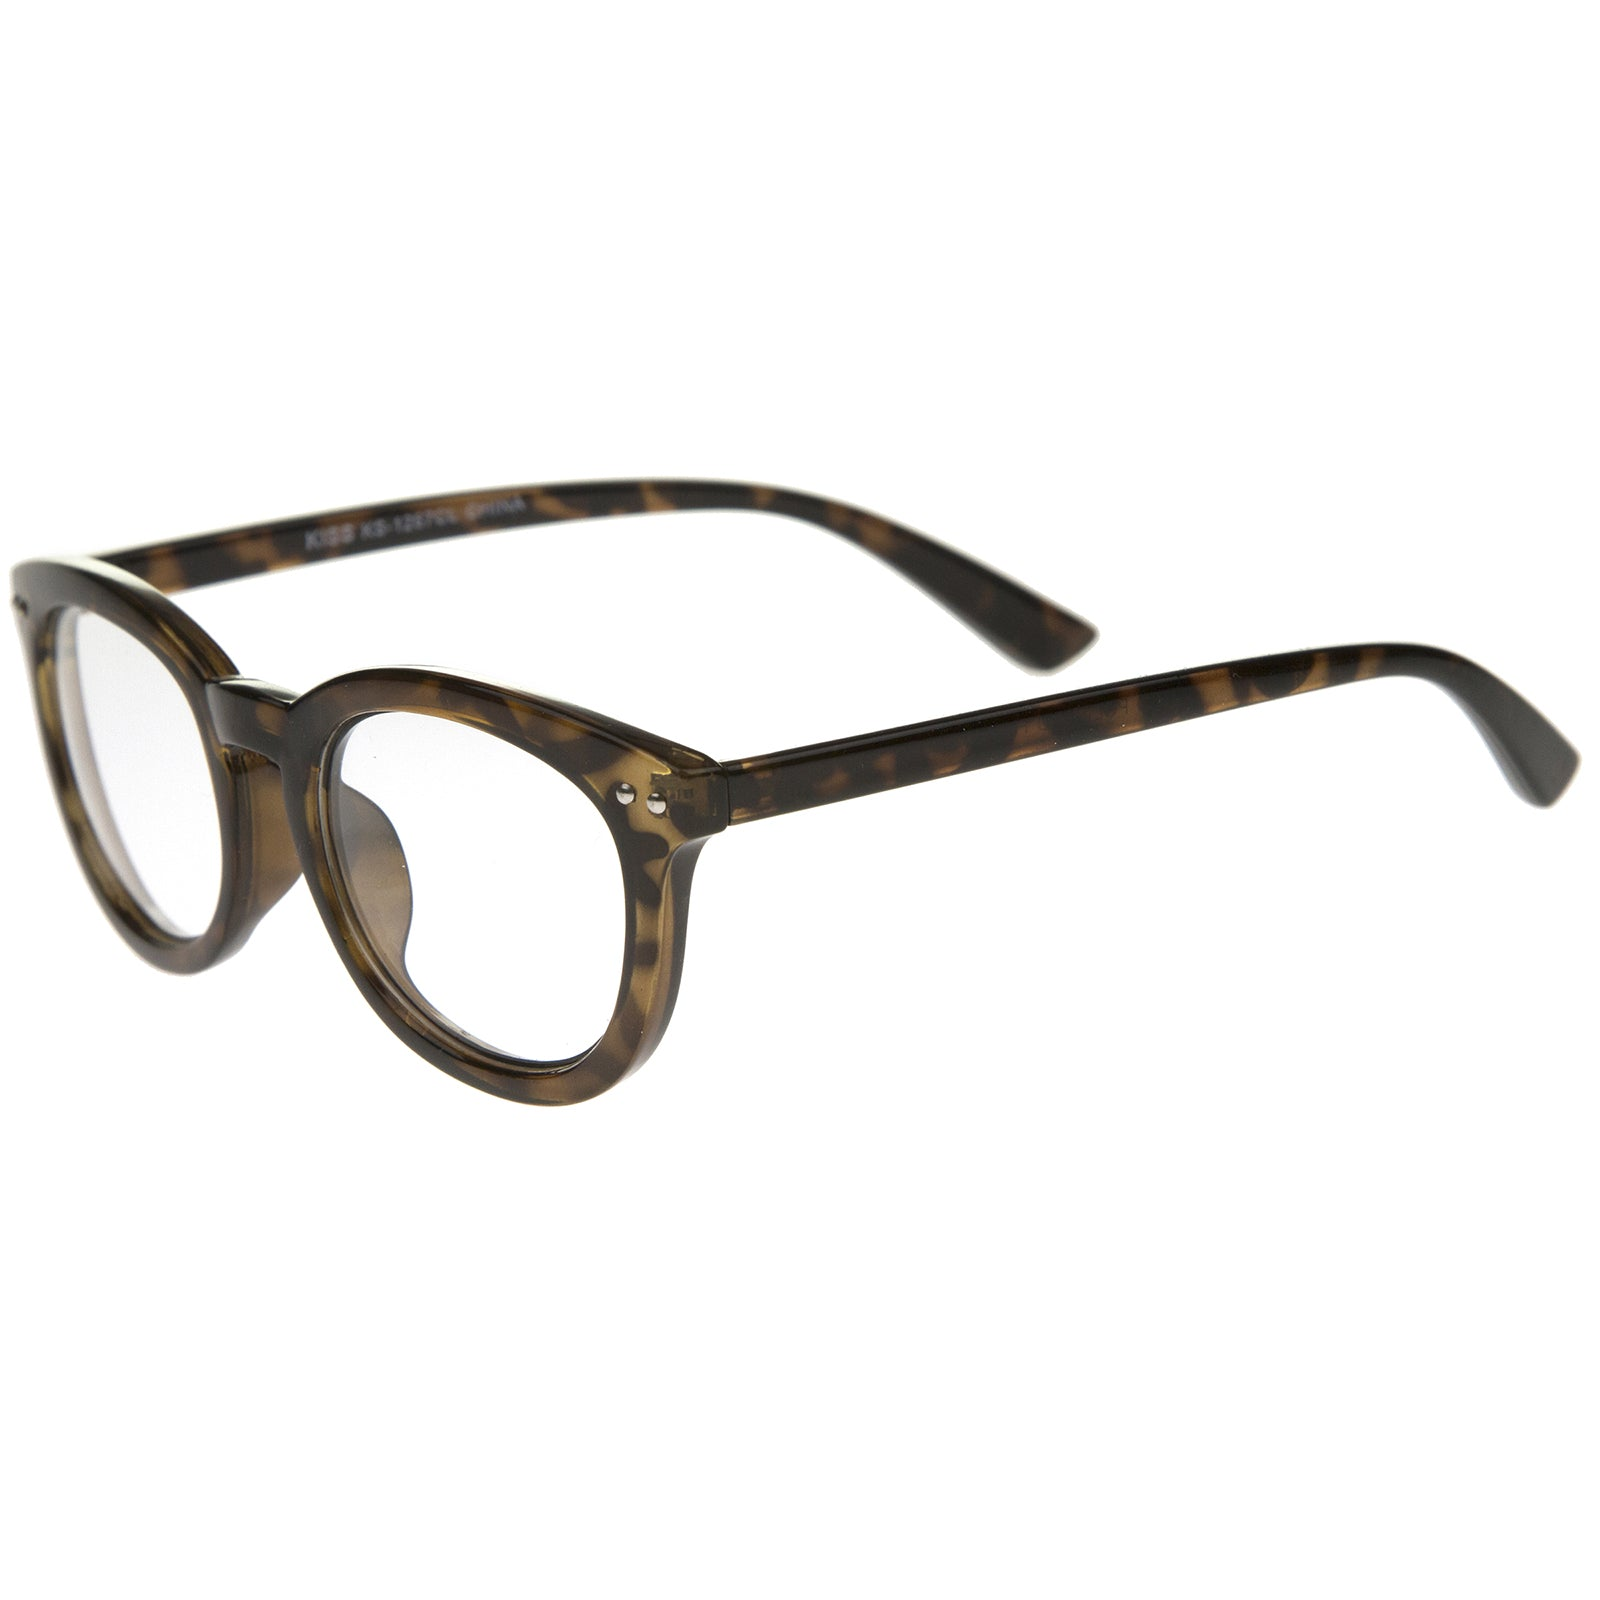 Classic Retro Casual Frame Horn Rimmed Oval Clear Lens Glasses 47mm - sunglass.la